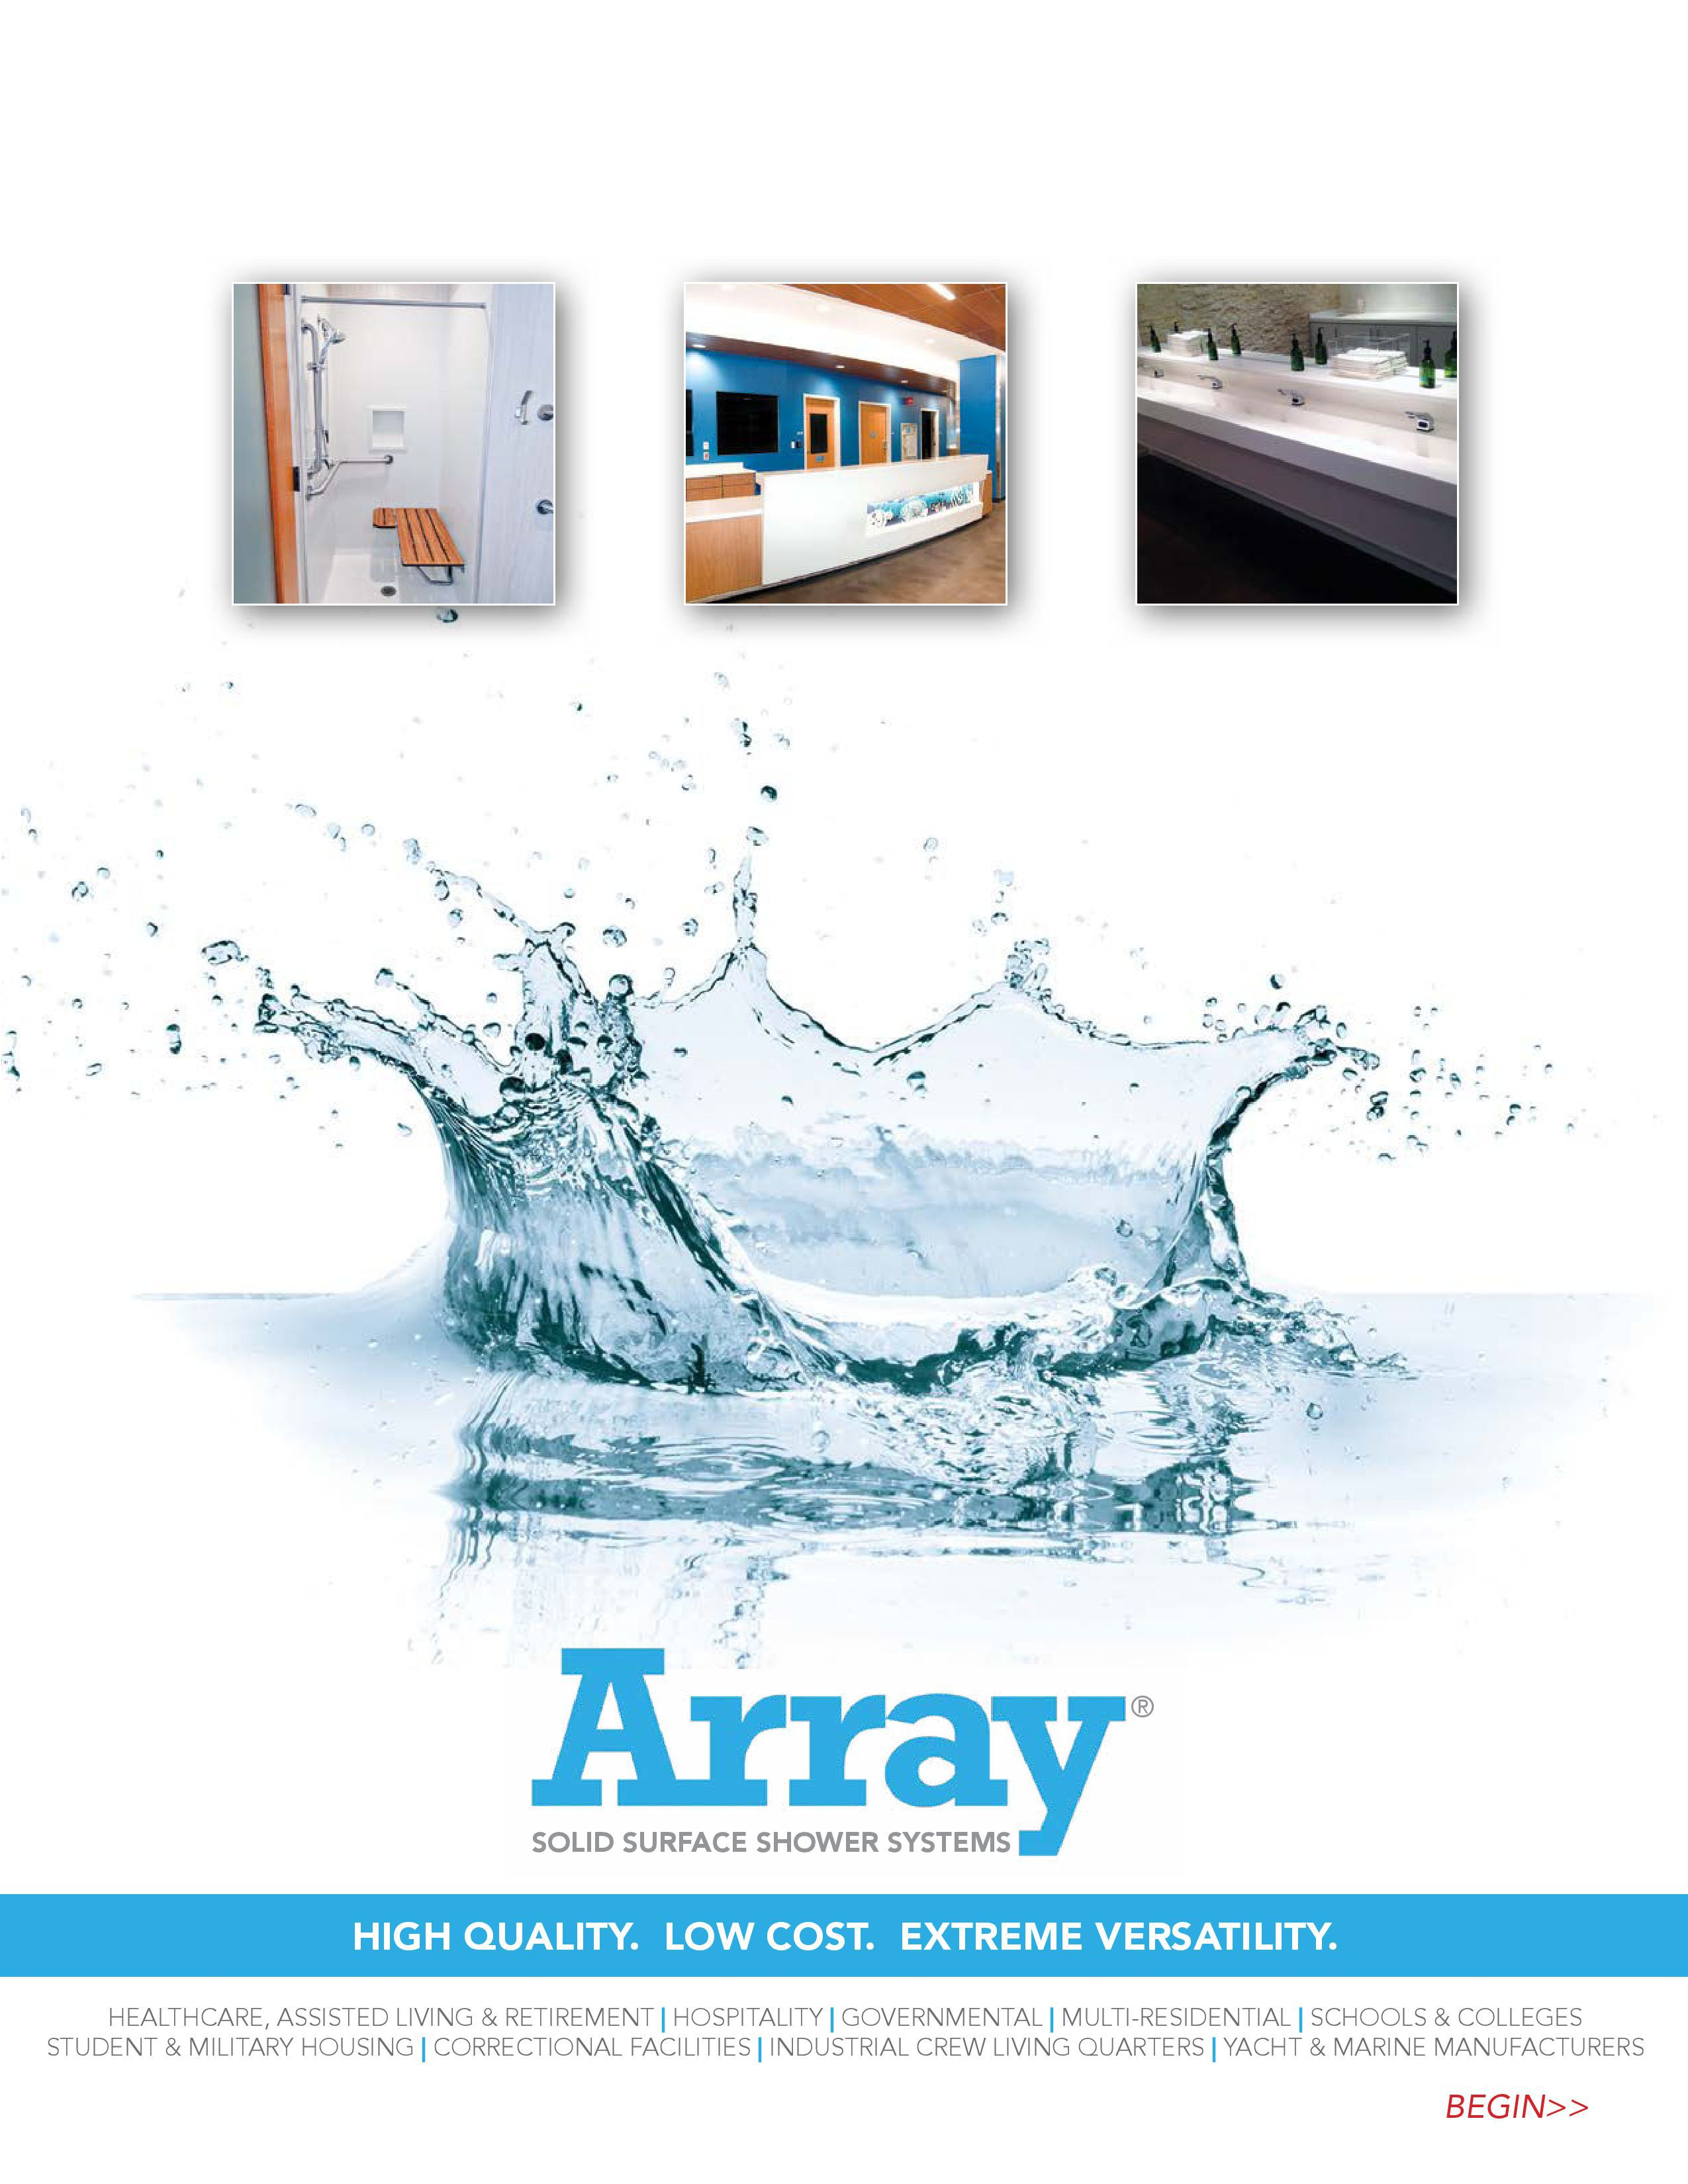 about - ARRAY Solid Surface Shower Systems